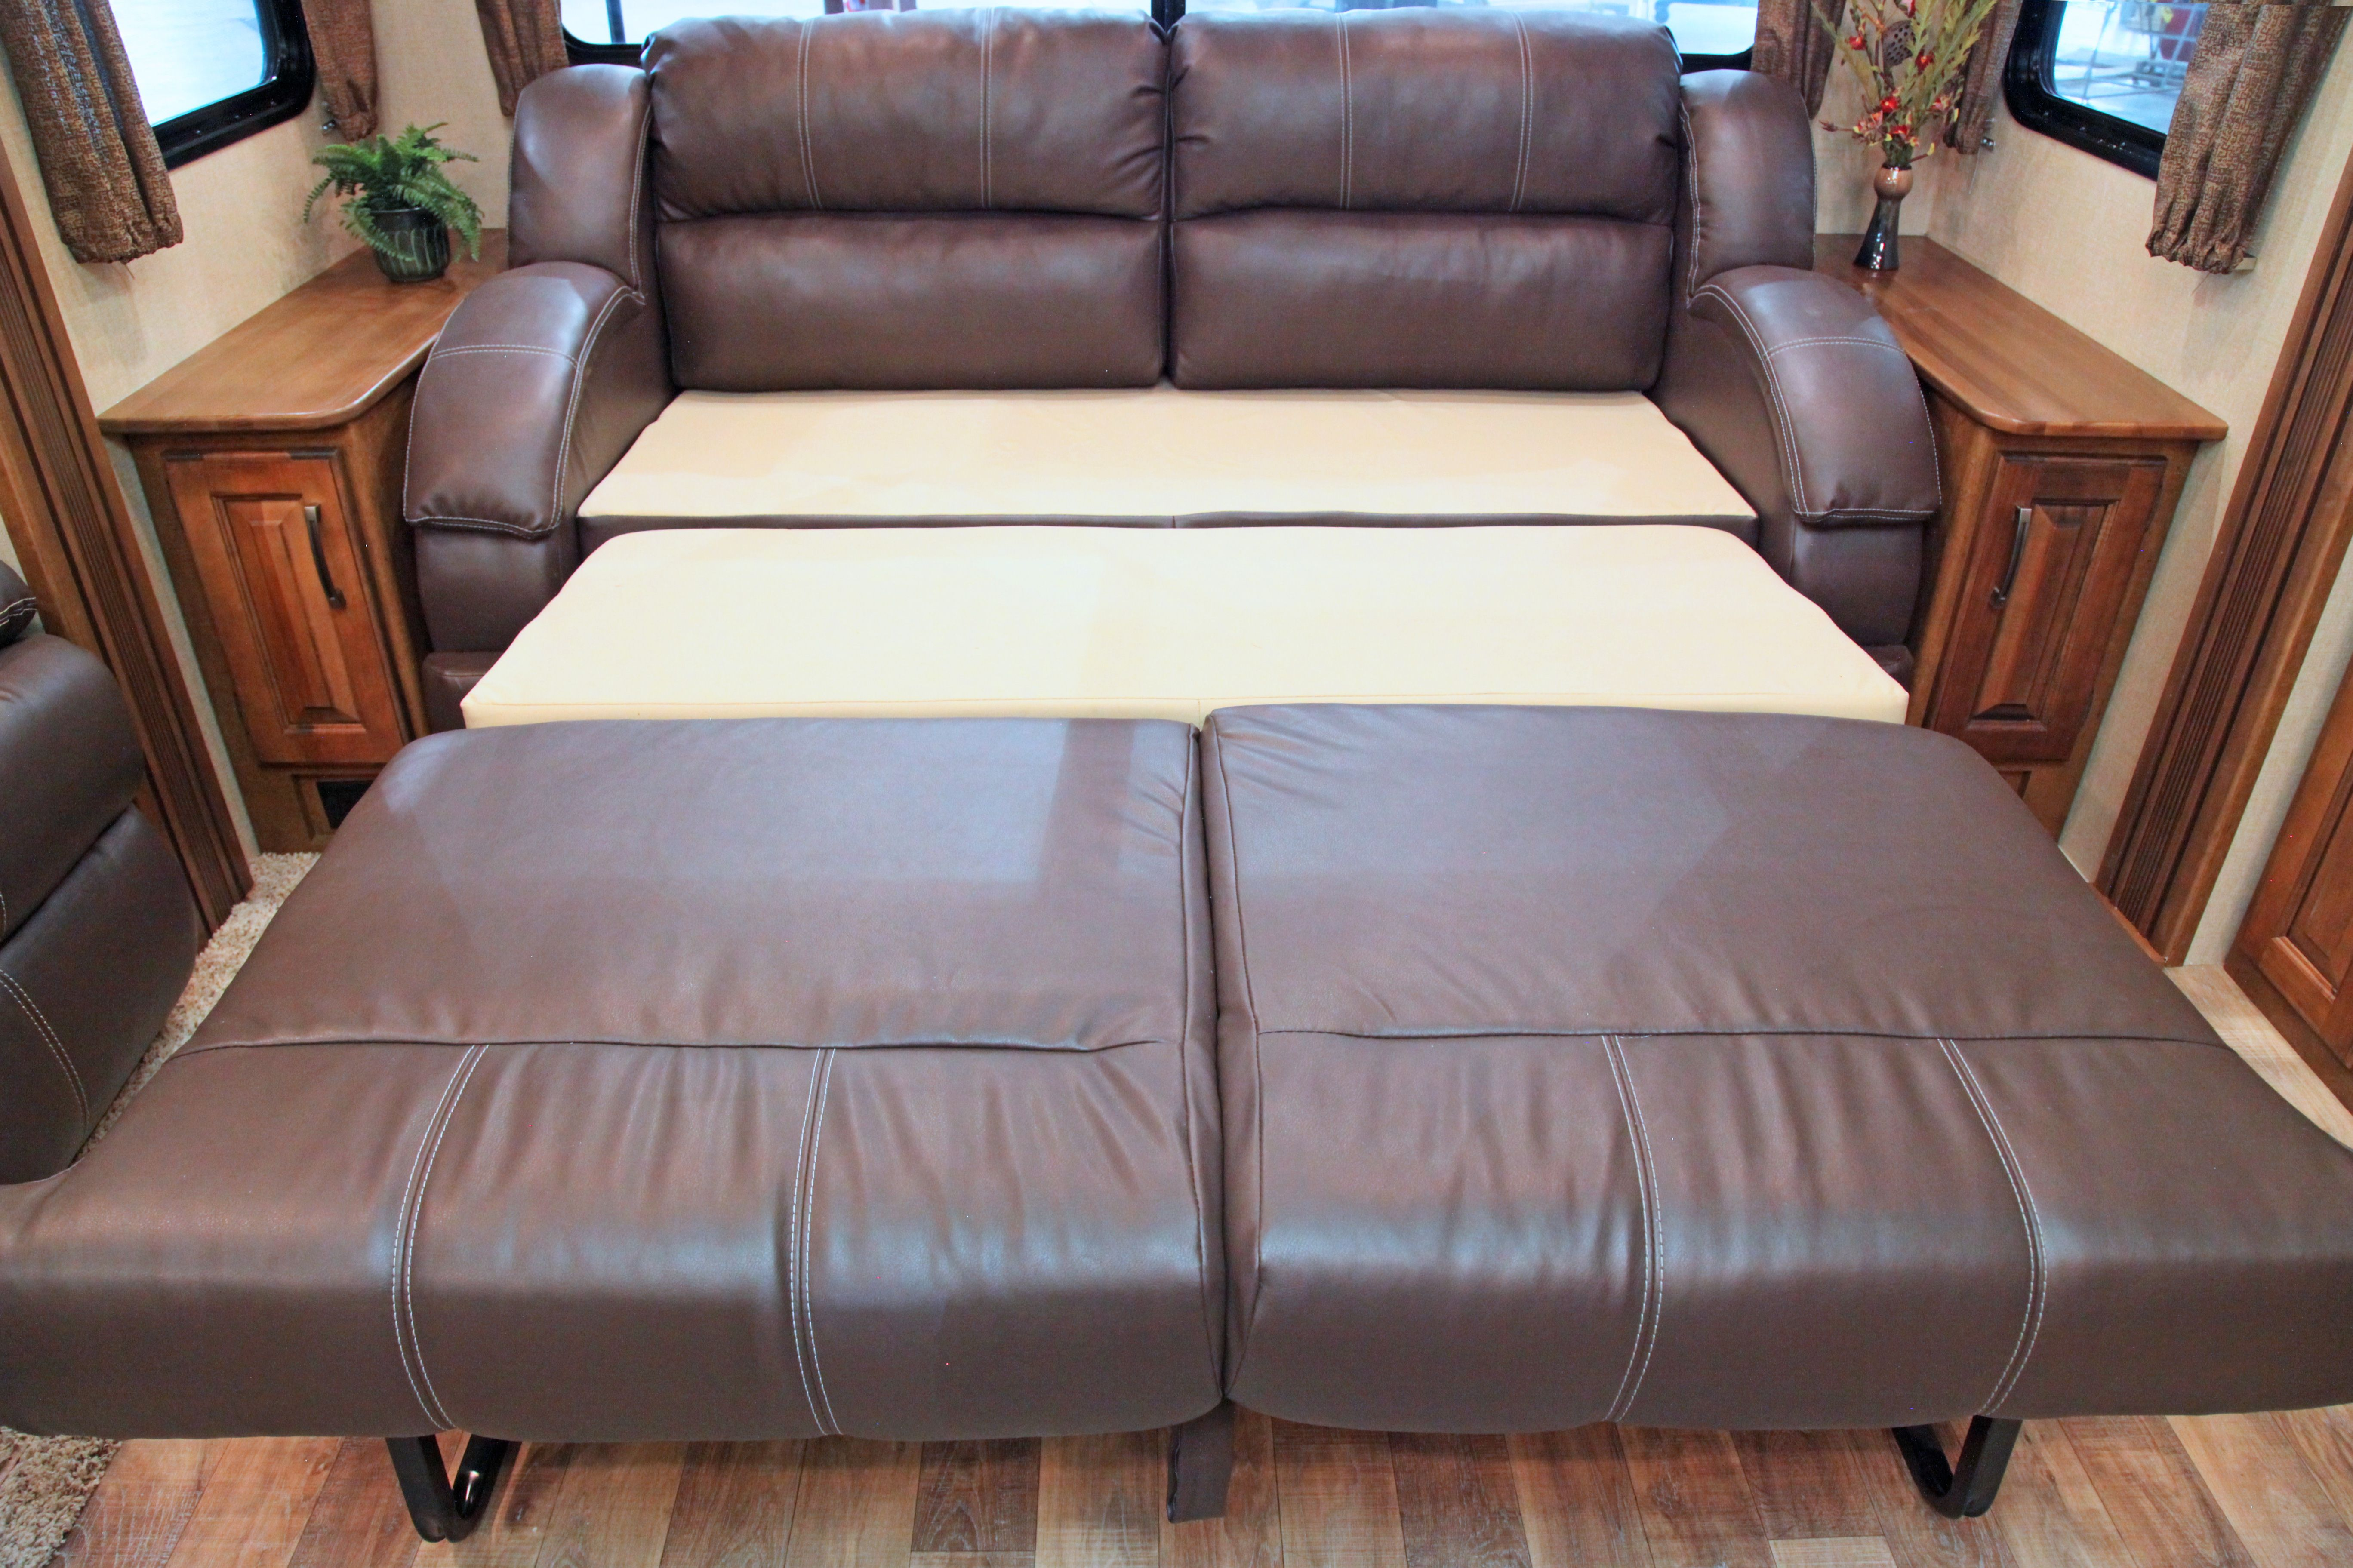 Camper Sofa Bed Mattress Having Nice Furniture In Your Home Allows You To Feel Both Relaxed Mentally And Physically Tri Fold